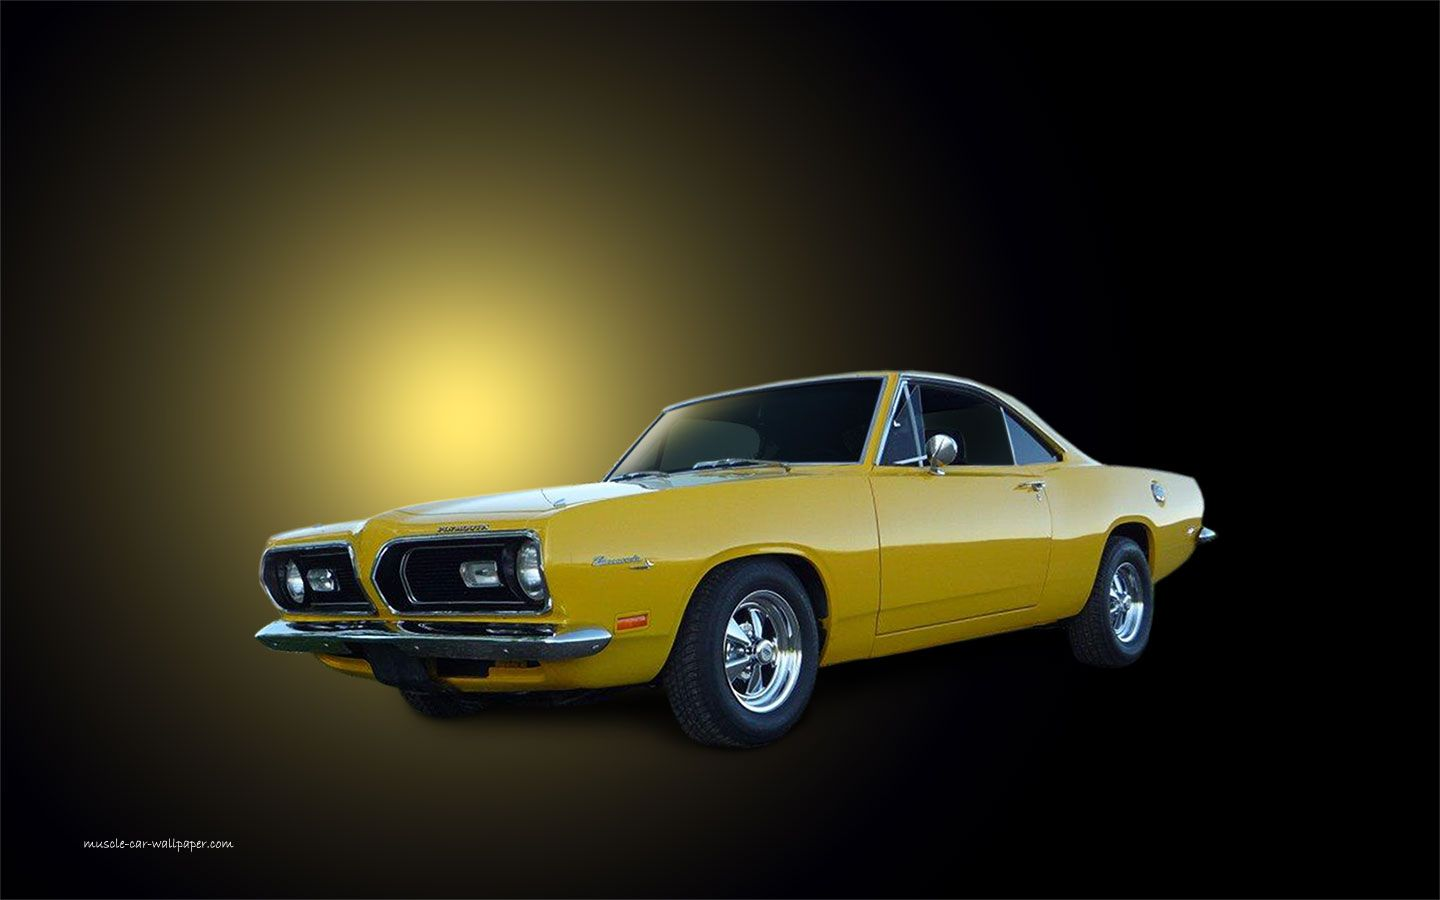 Baracuda Muscle Cars Wallpaper Classic Cars Muscle Muscle Cars